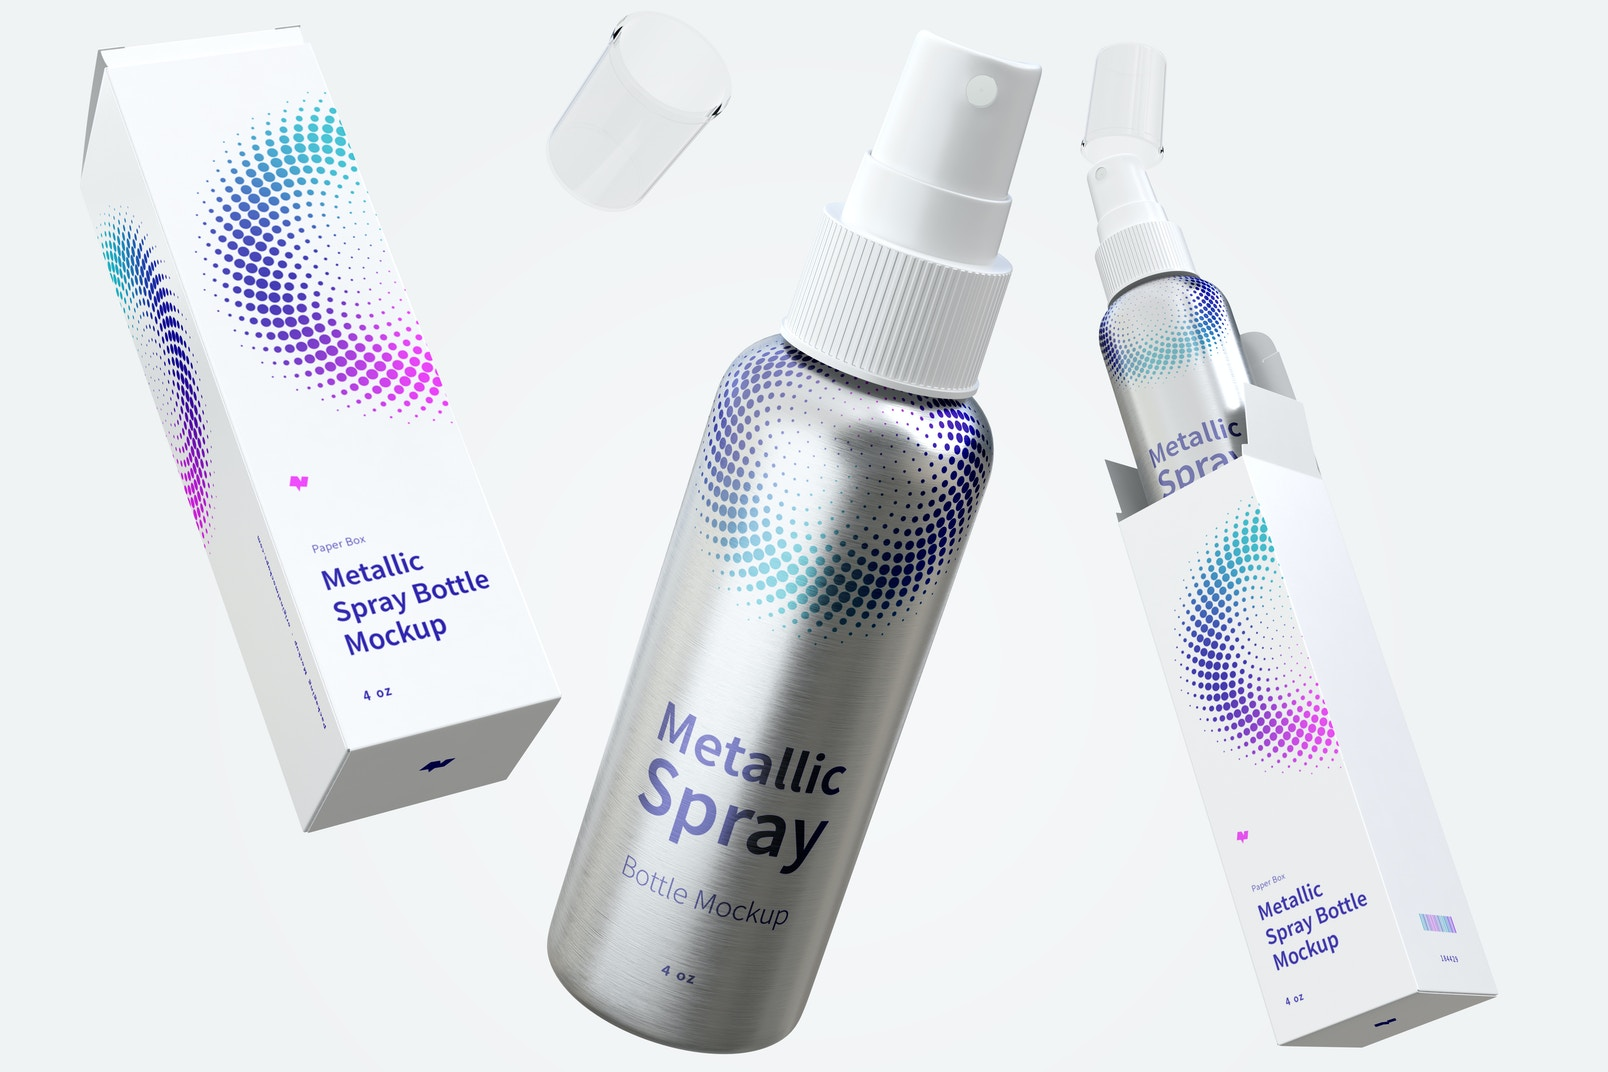 4 oz Metallic Spray Bottles Mockup with Paper Boxes, Floating